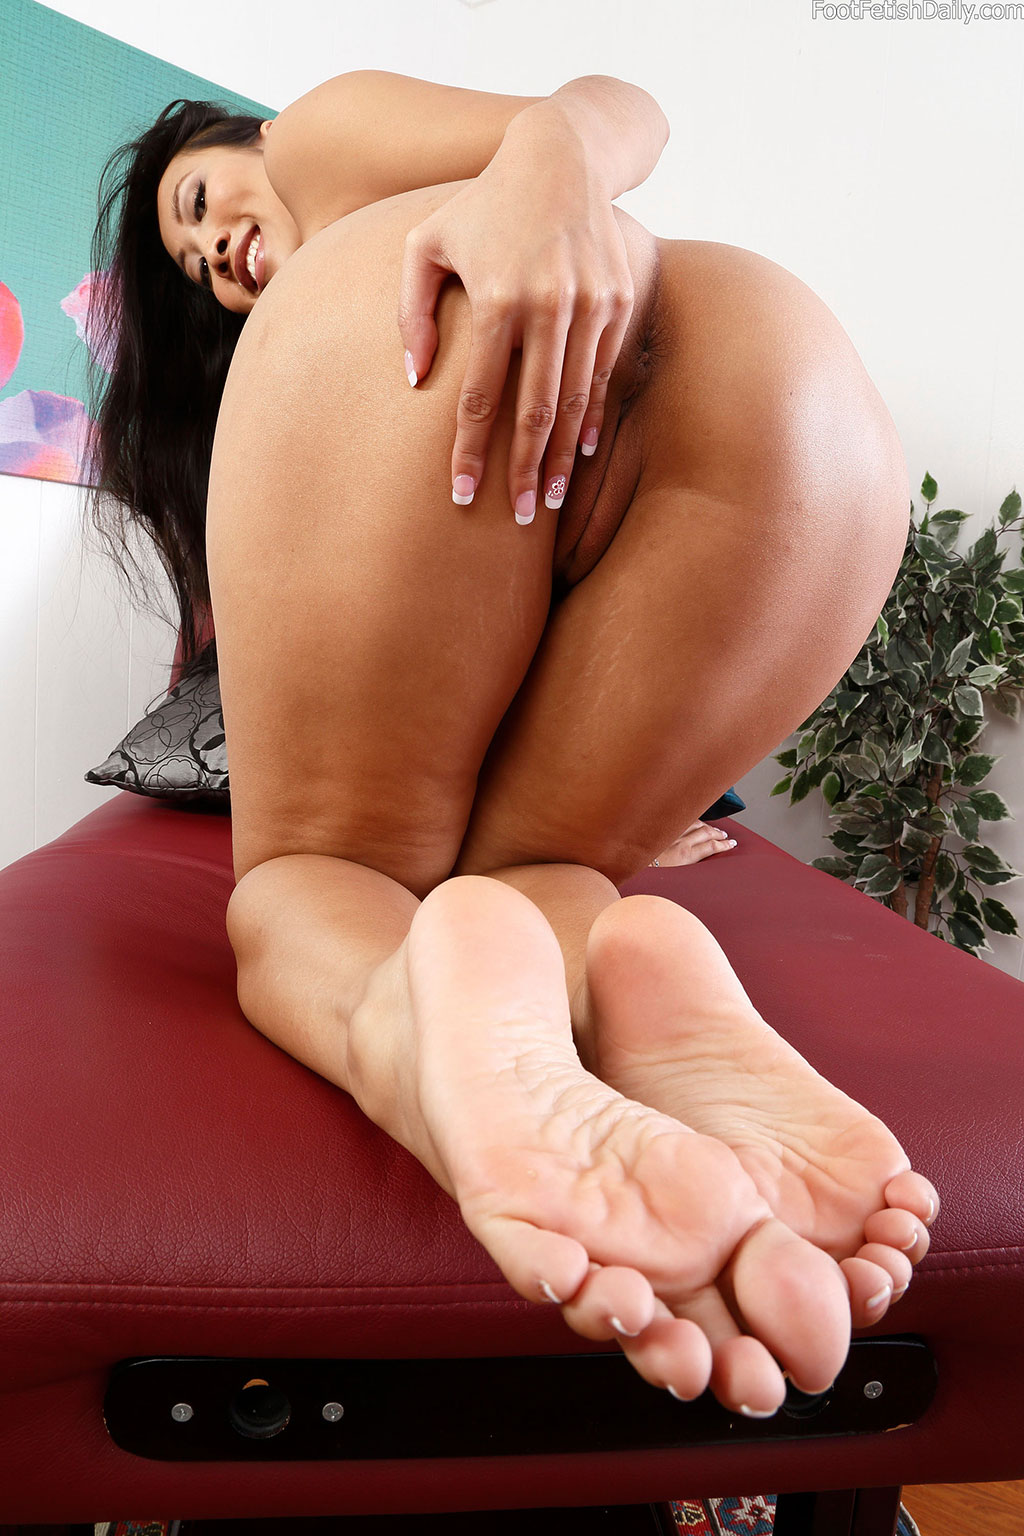 Asian Teen Talking About Foot Fetish